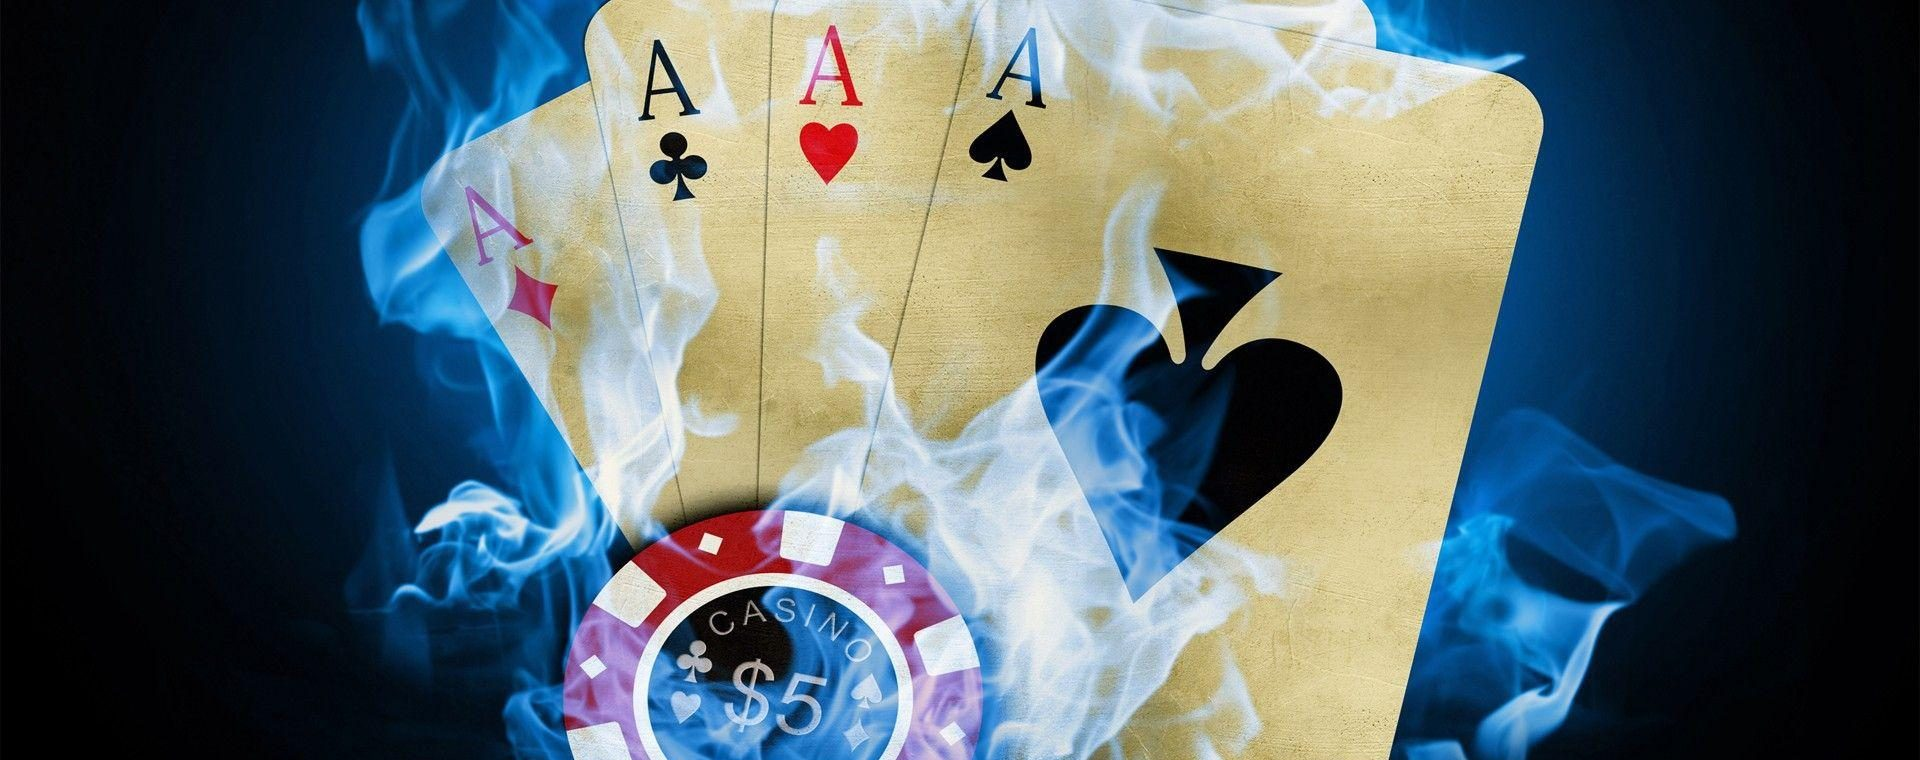 The Ten Best Things About Online Casino